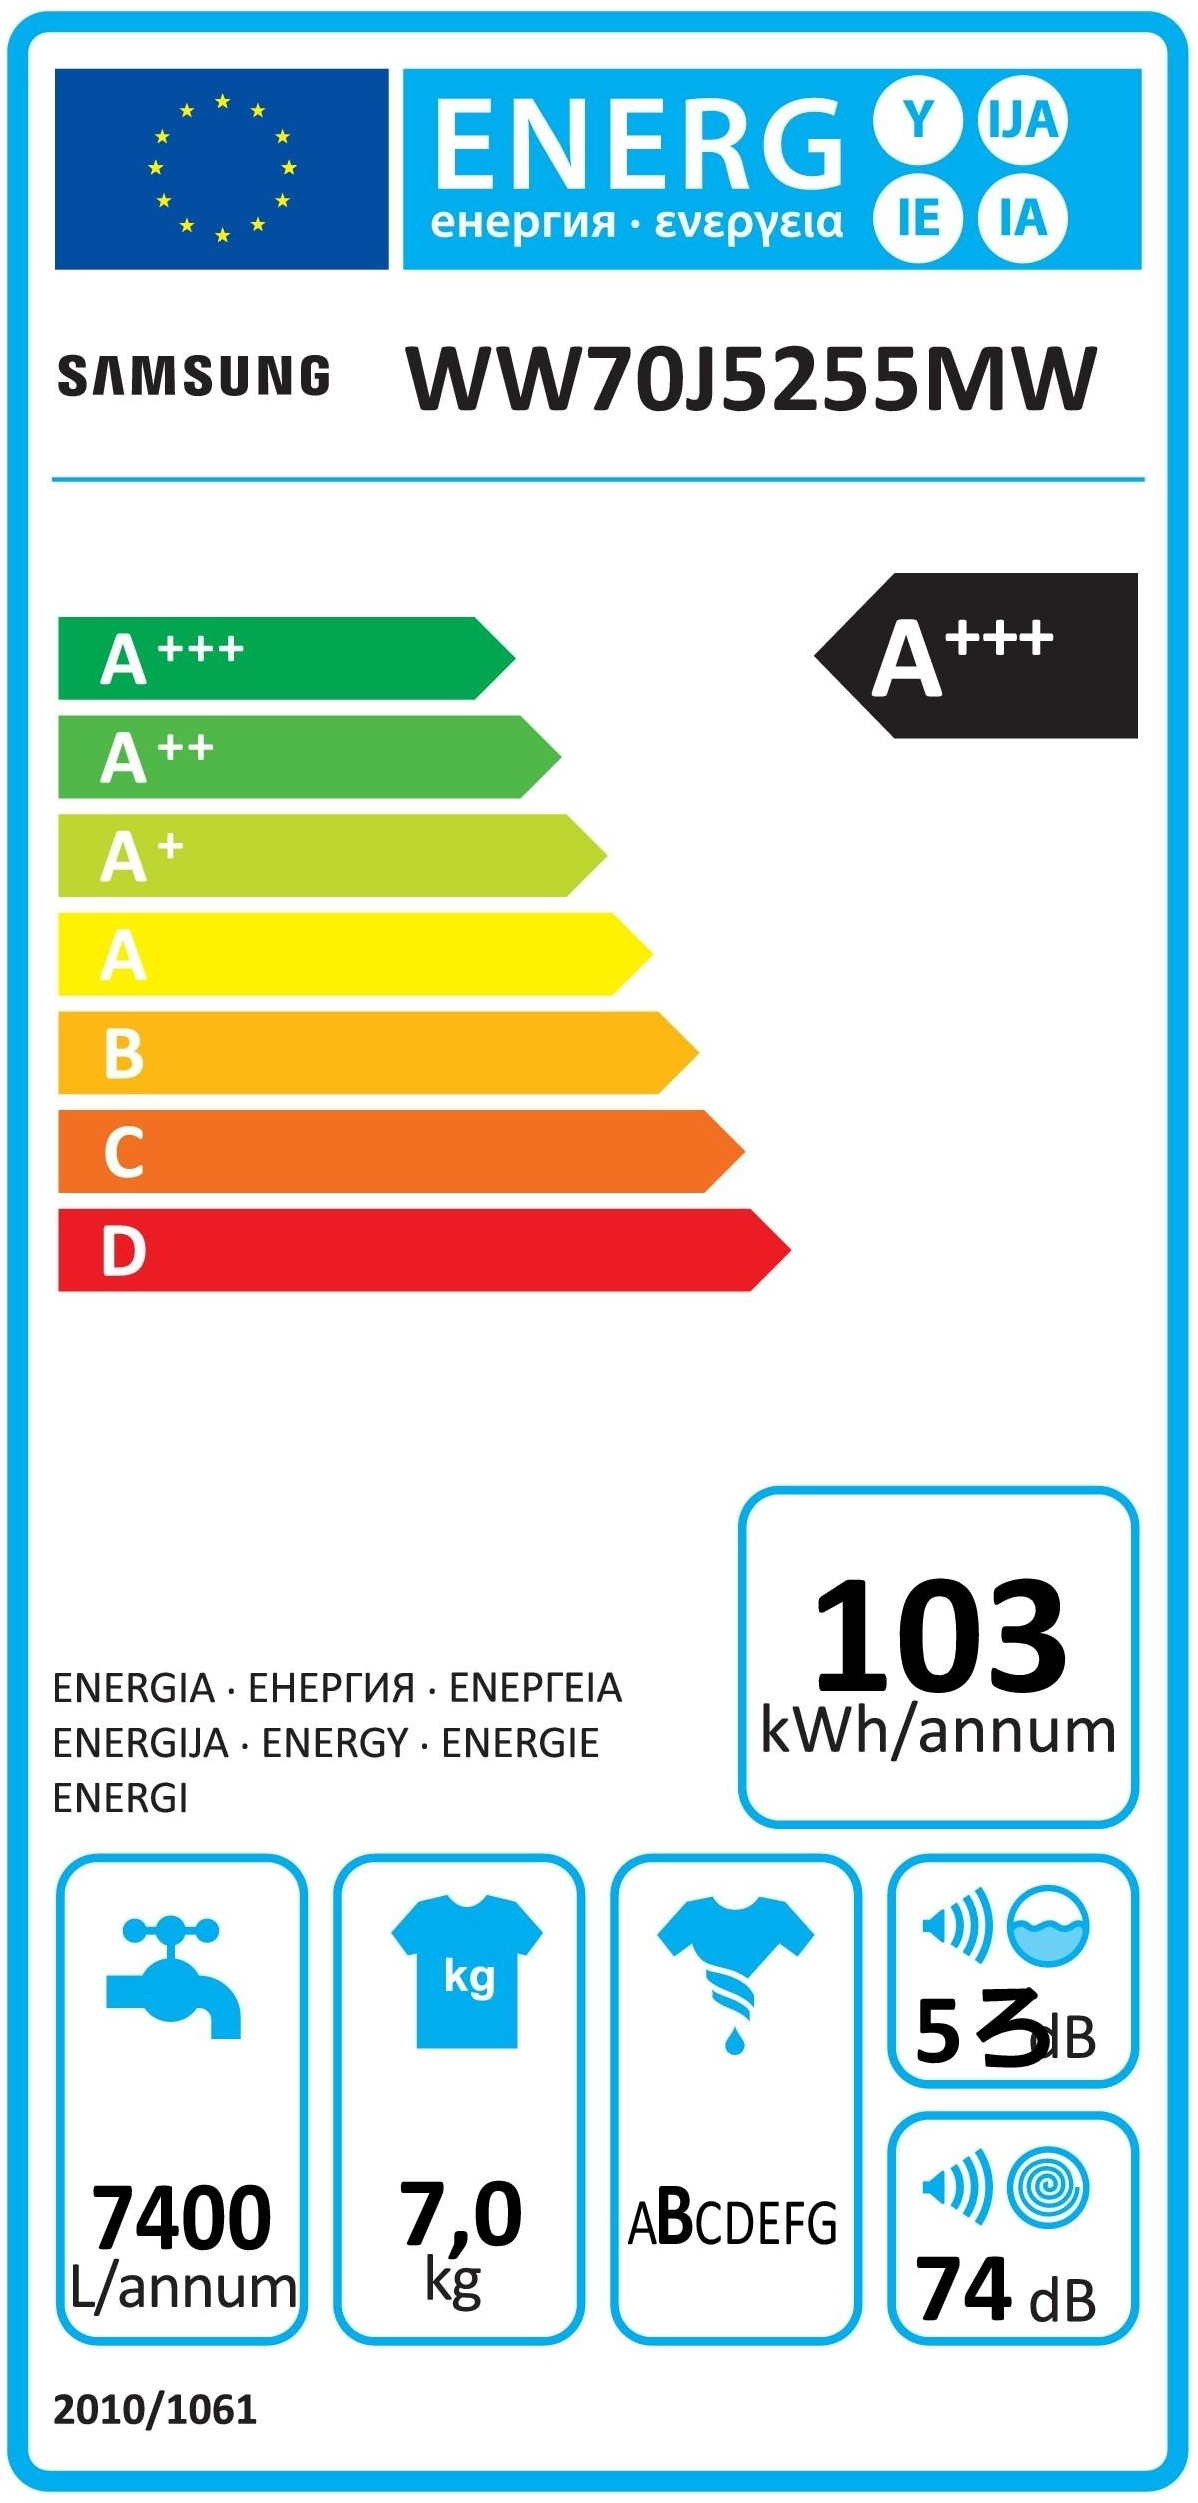 Samsung Lavatrici Carica Frontale WW70J5255MW - Expert official shop ...